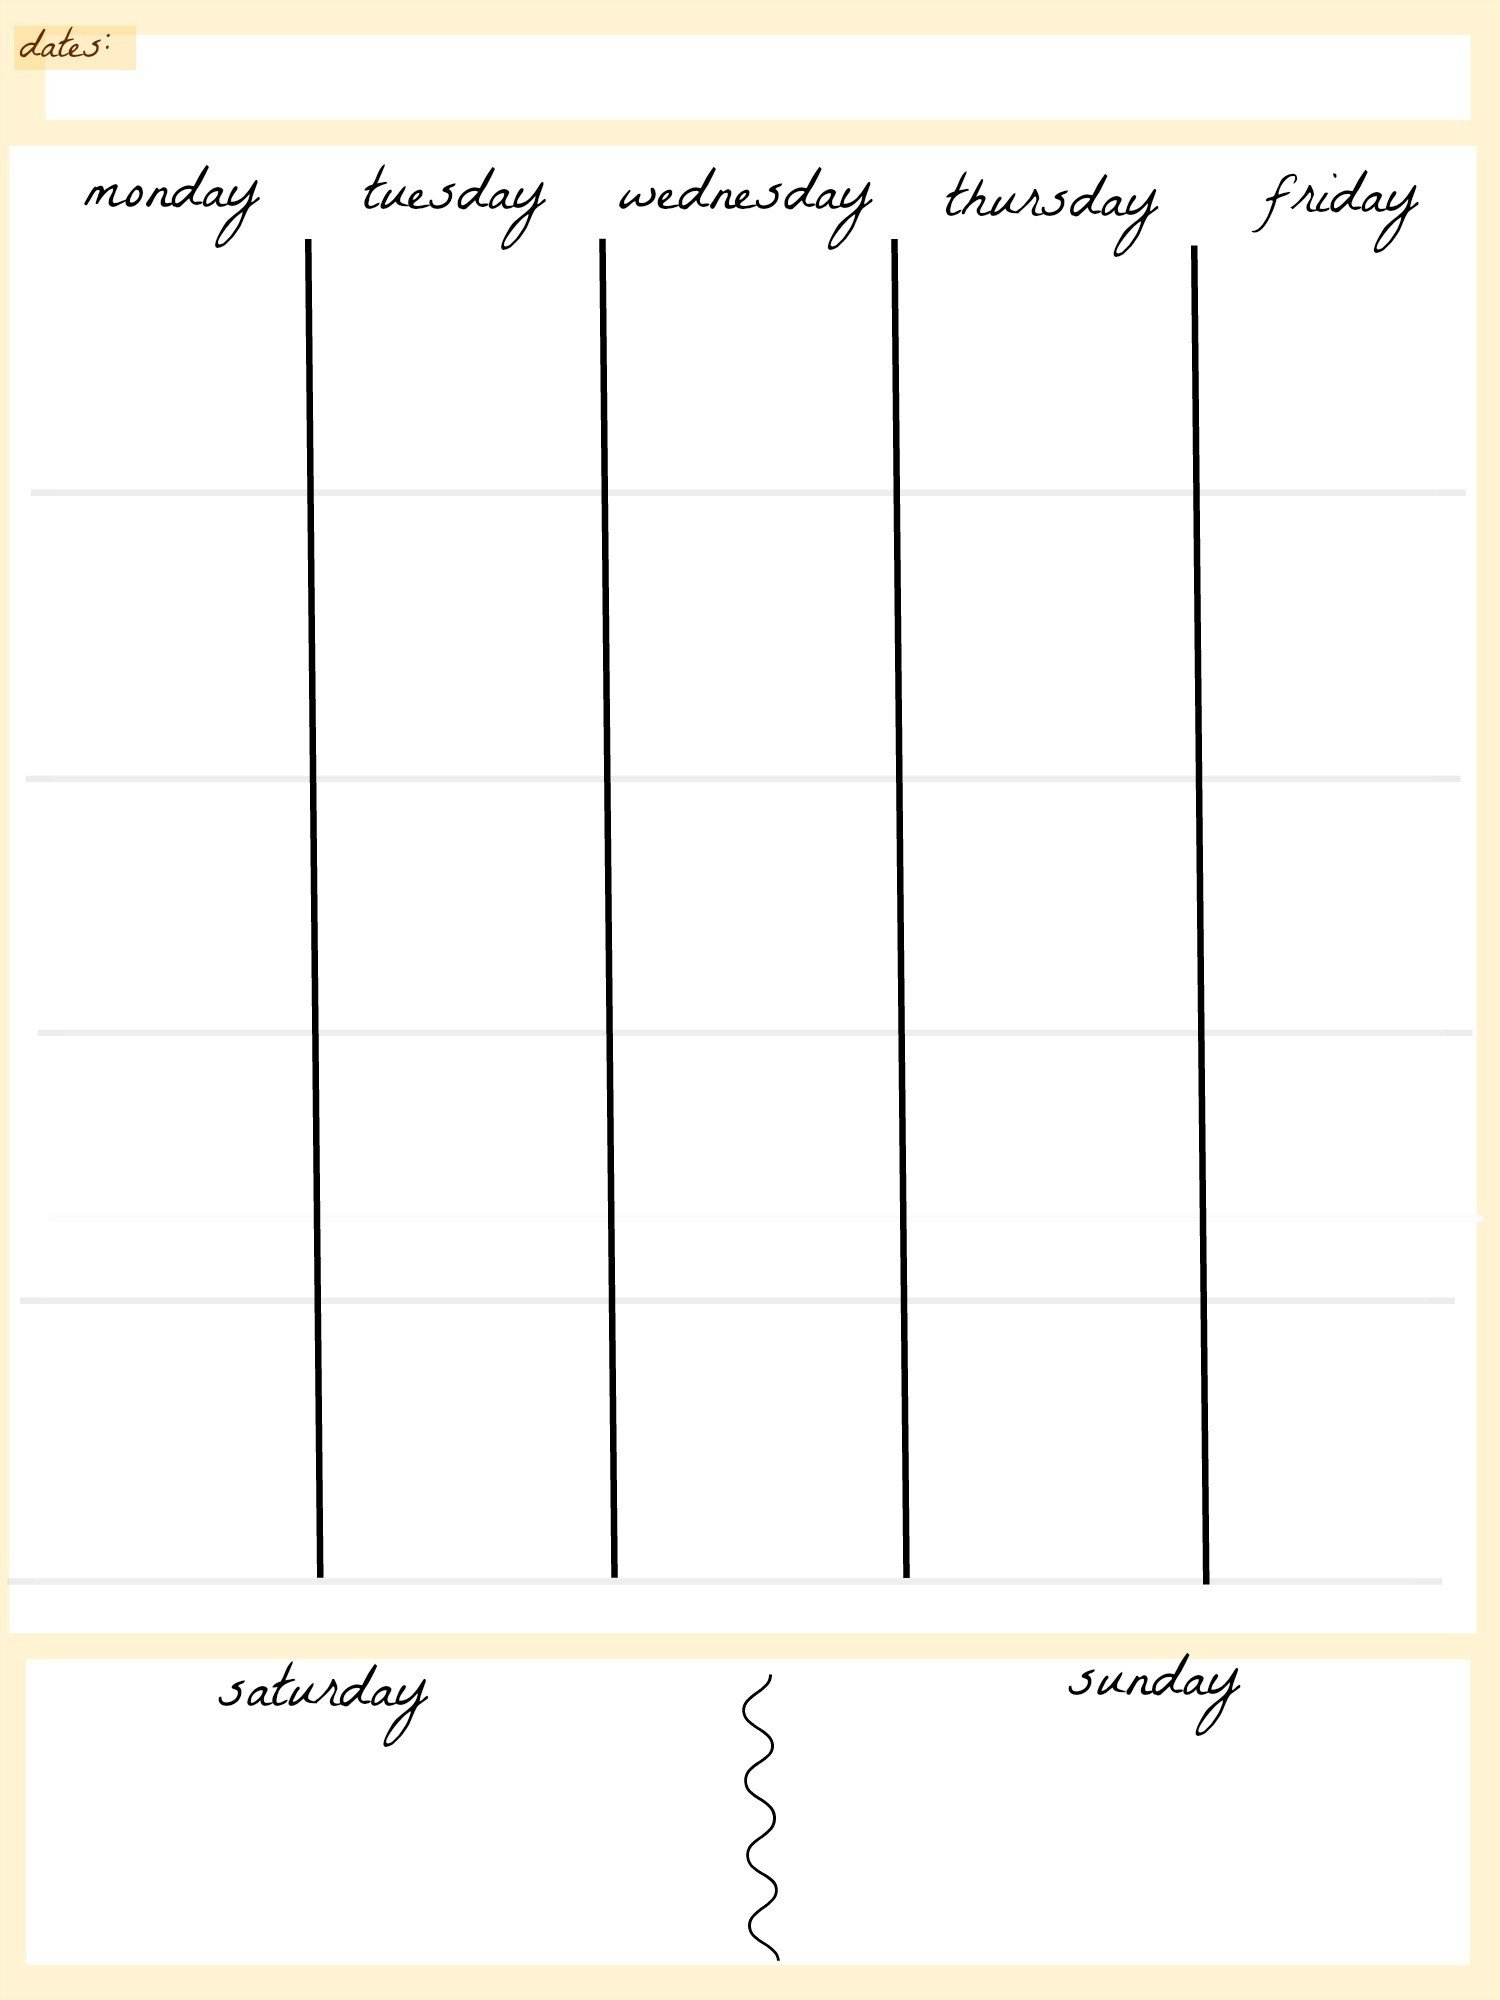 5 Day Week Calendar Template | Example Calendar Printable Blank 4 Week Calendar